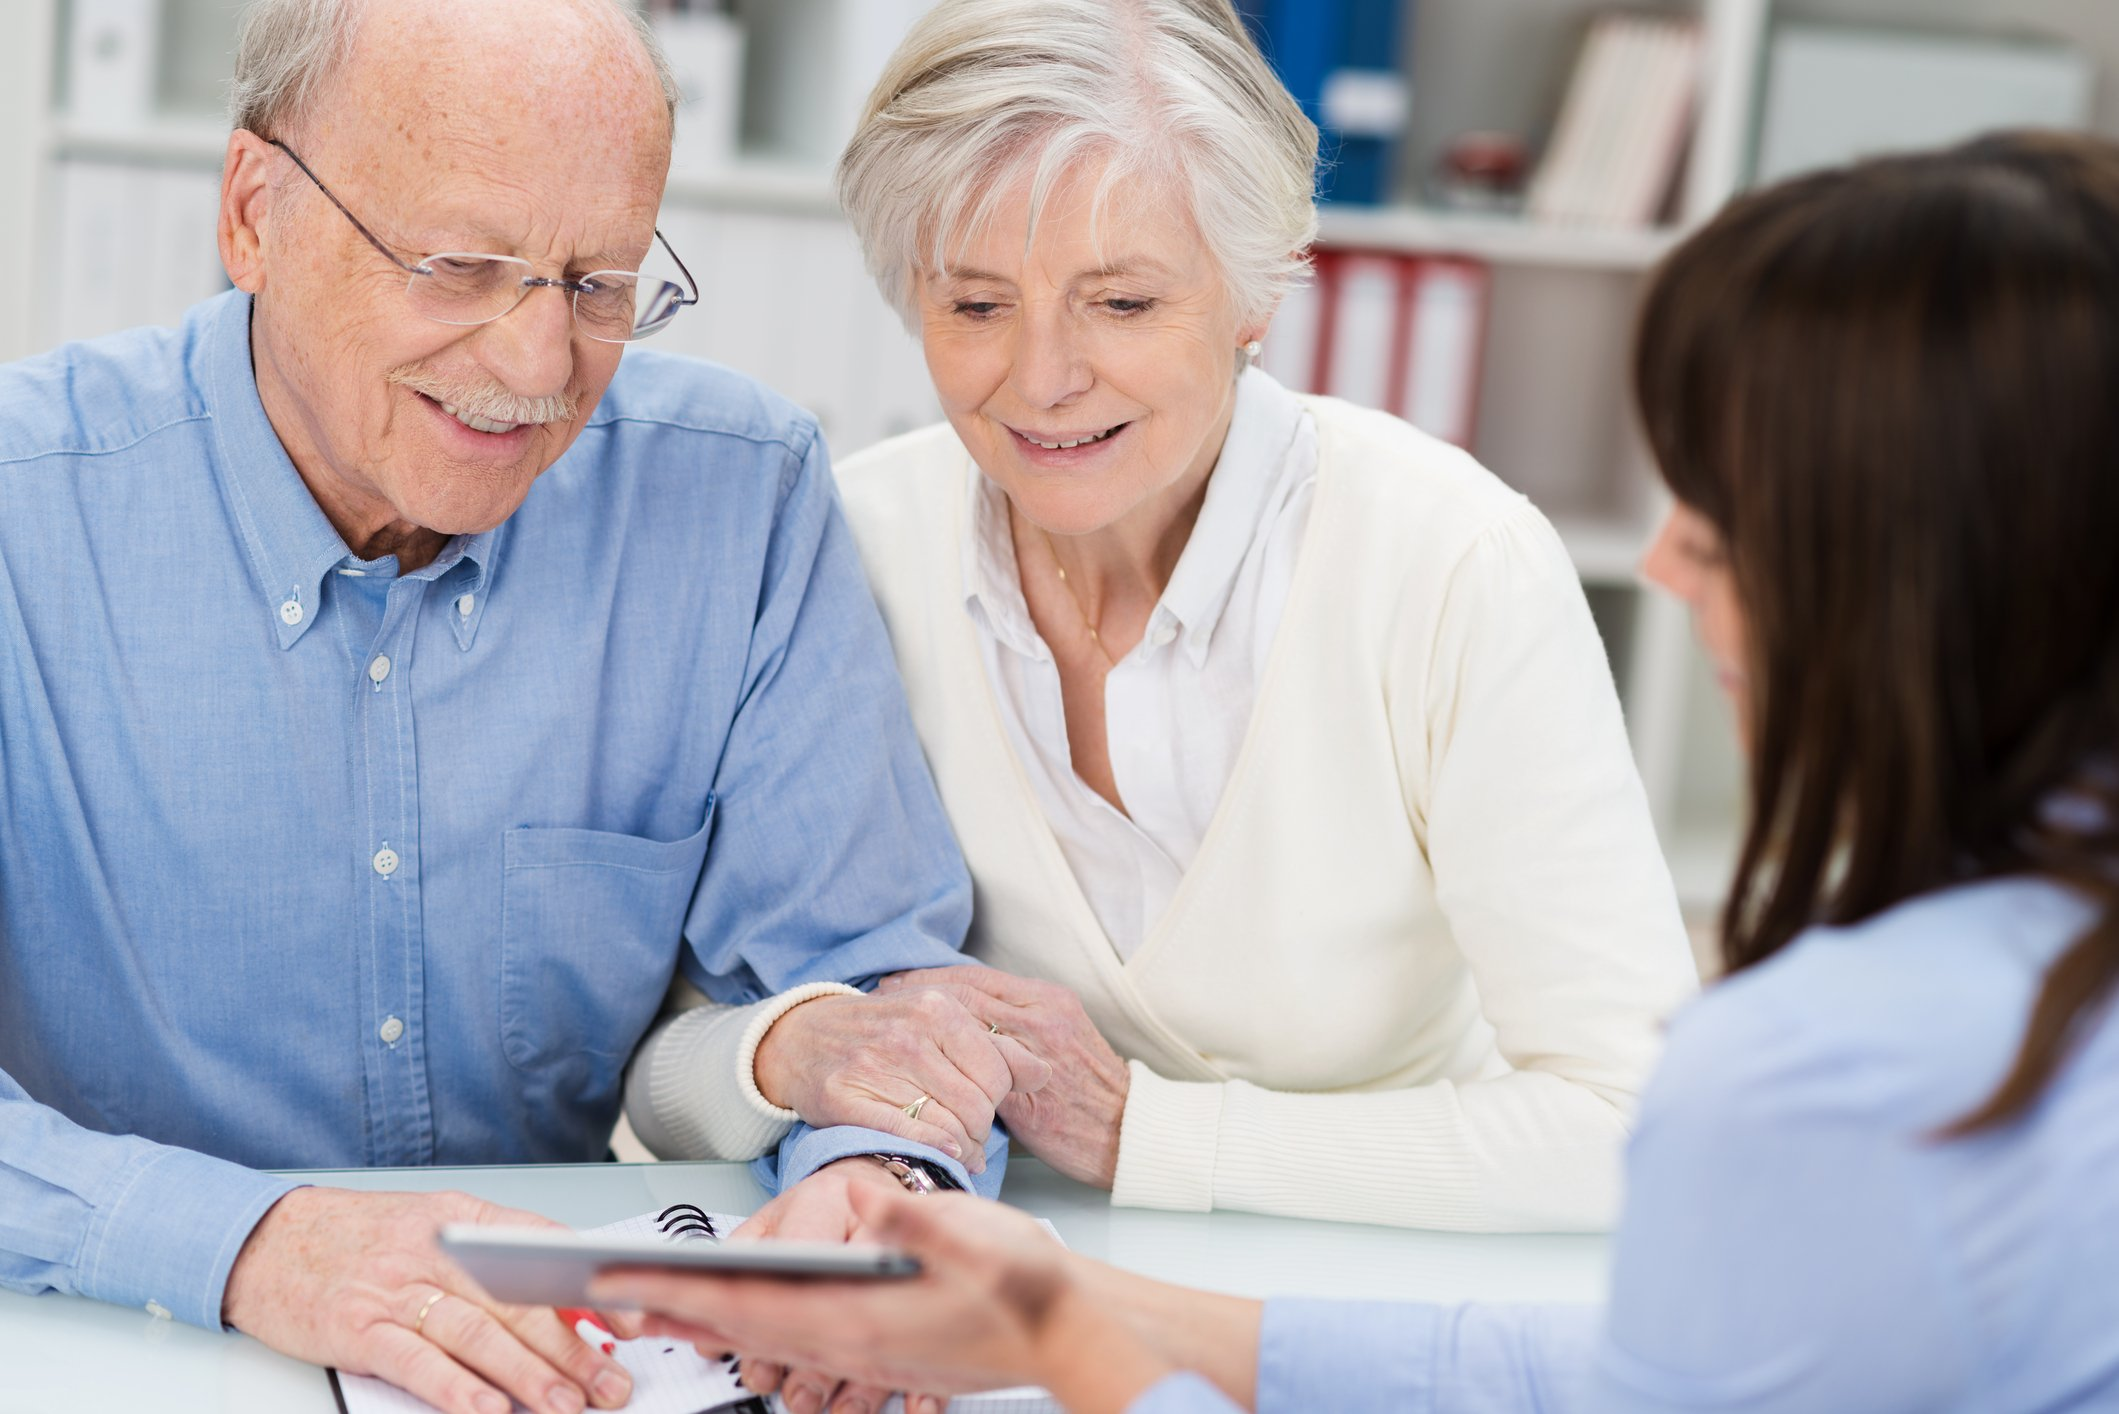 Reverse Mortgage Servicing System Helps Servicer Propel To Leadership Position